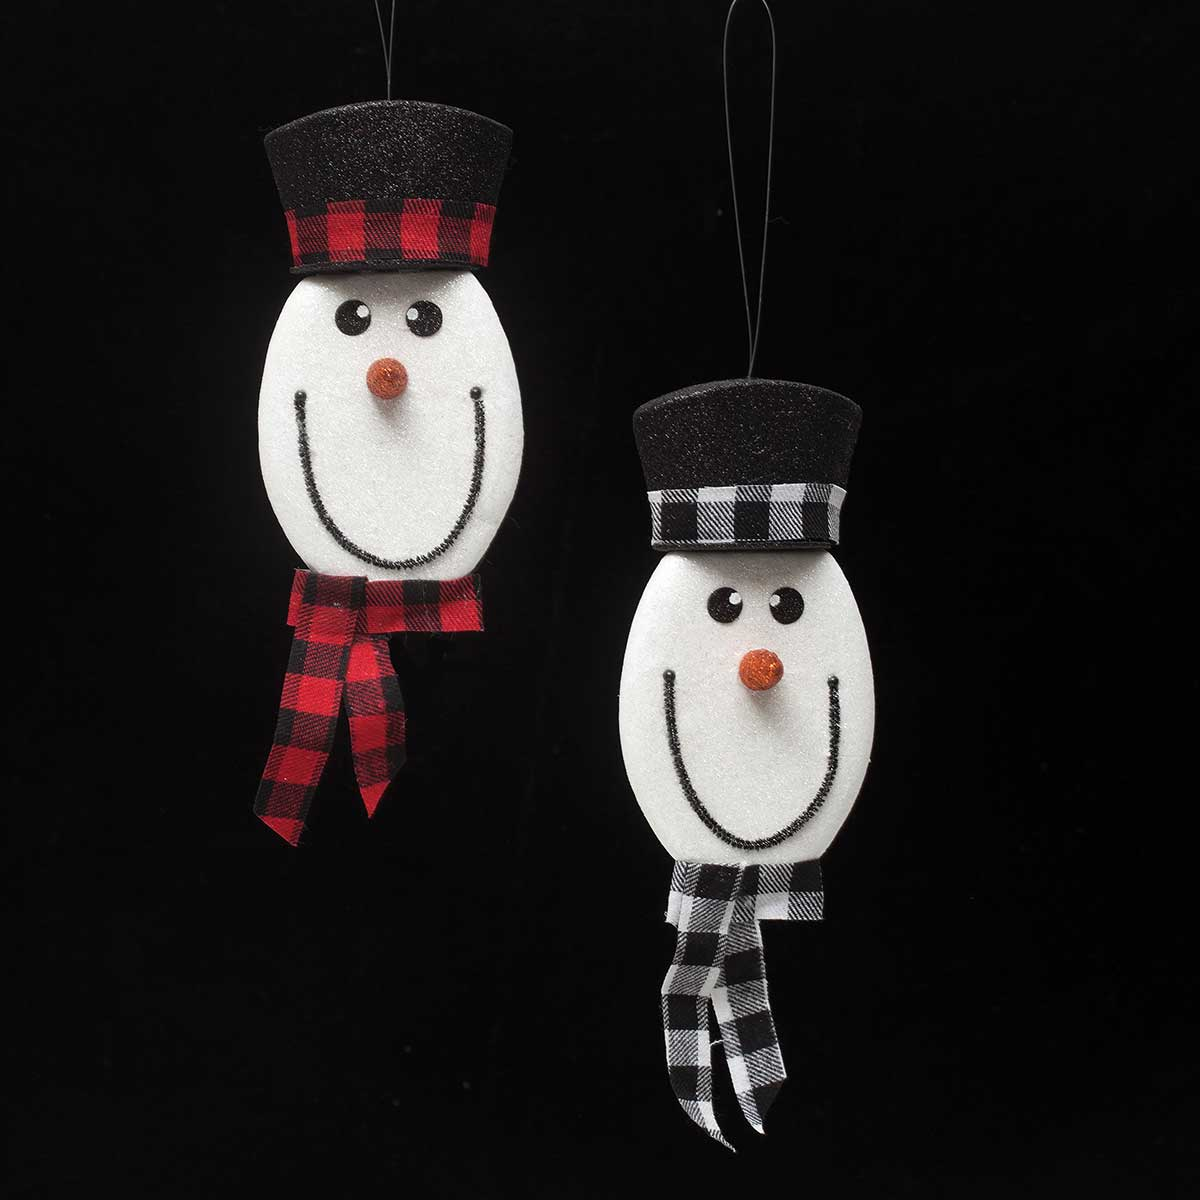 LET IT SNOW SNOWMAN PLAID ORNAMENT 12""